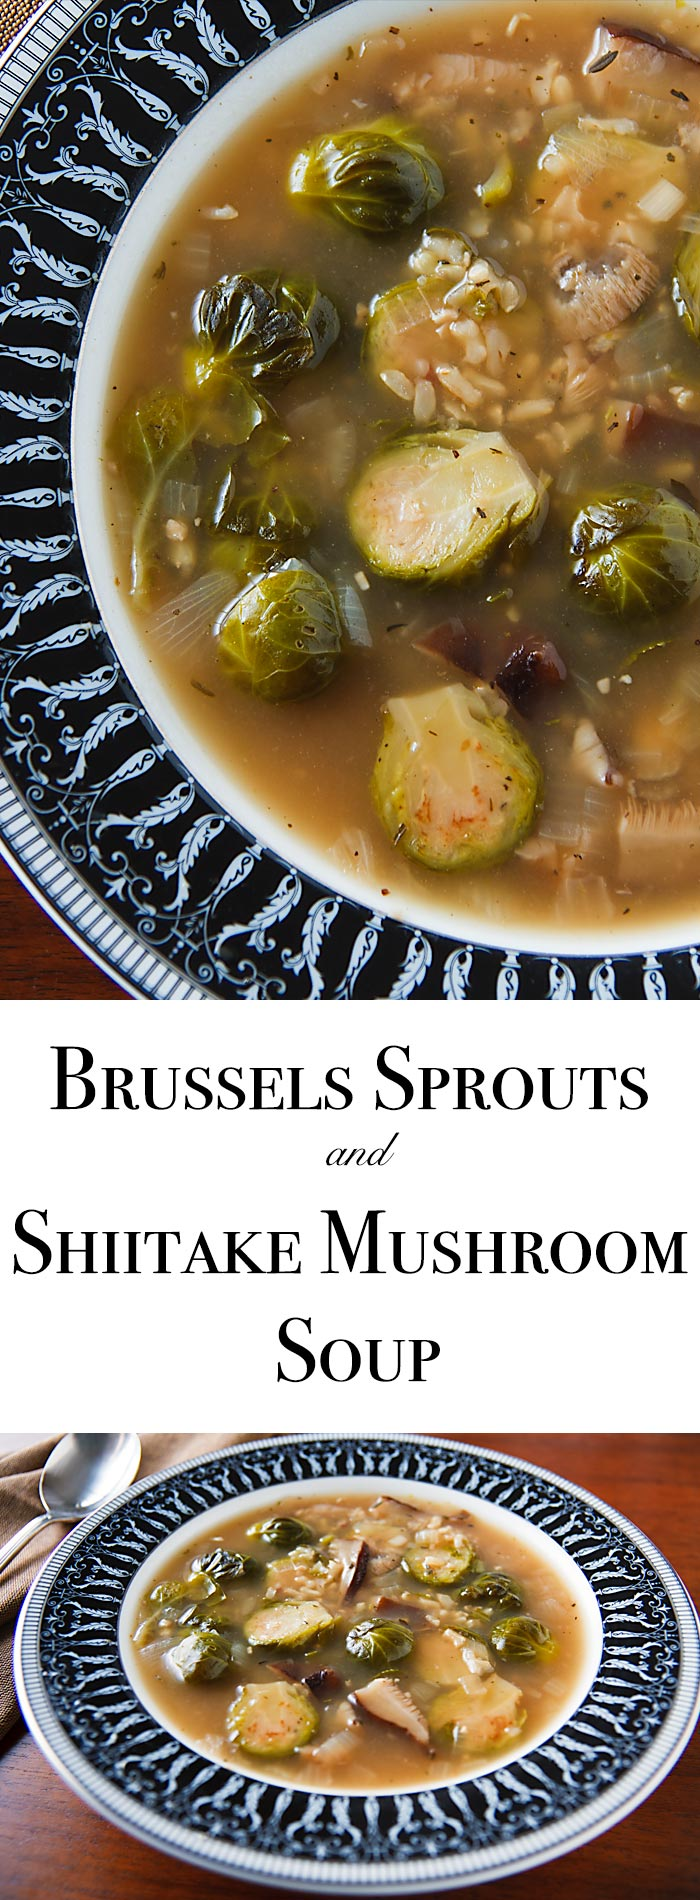 Shiitake mushrooms create a wonderfully rich and flavorful broth for this vegan brussels sprouts soup, which is full of the taste and aroma of Thanksgiving. #vegan #wfpb #wfpbno #glutenfree